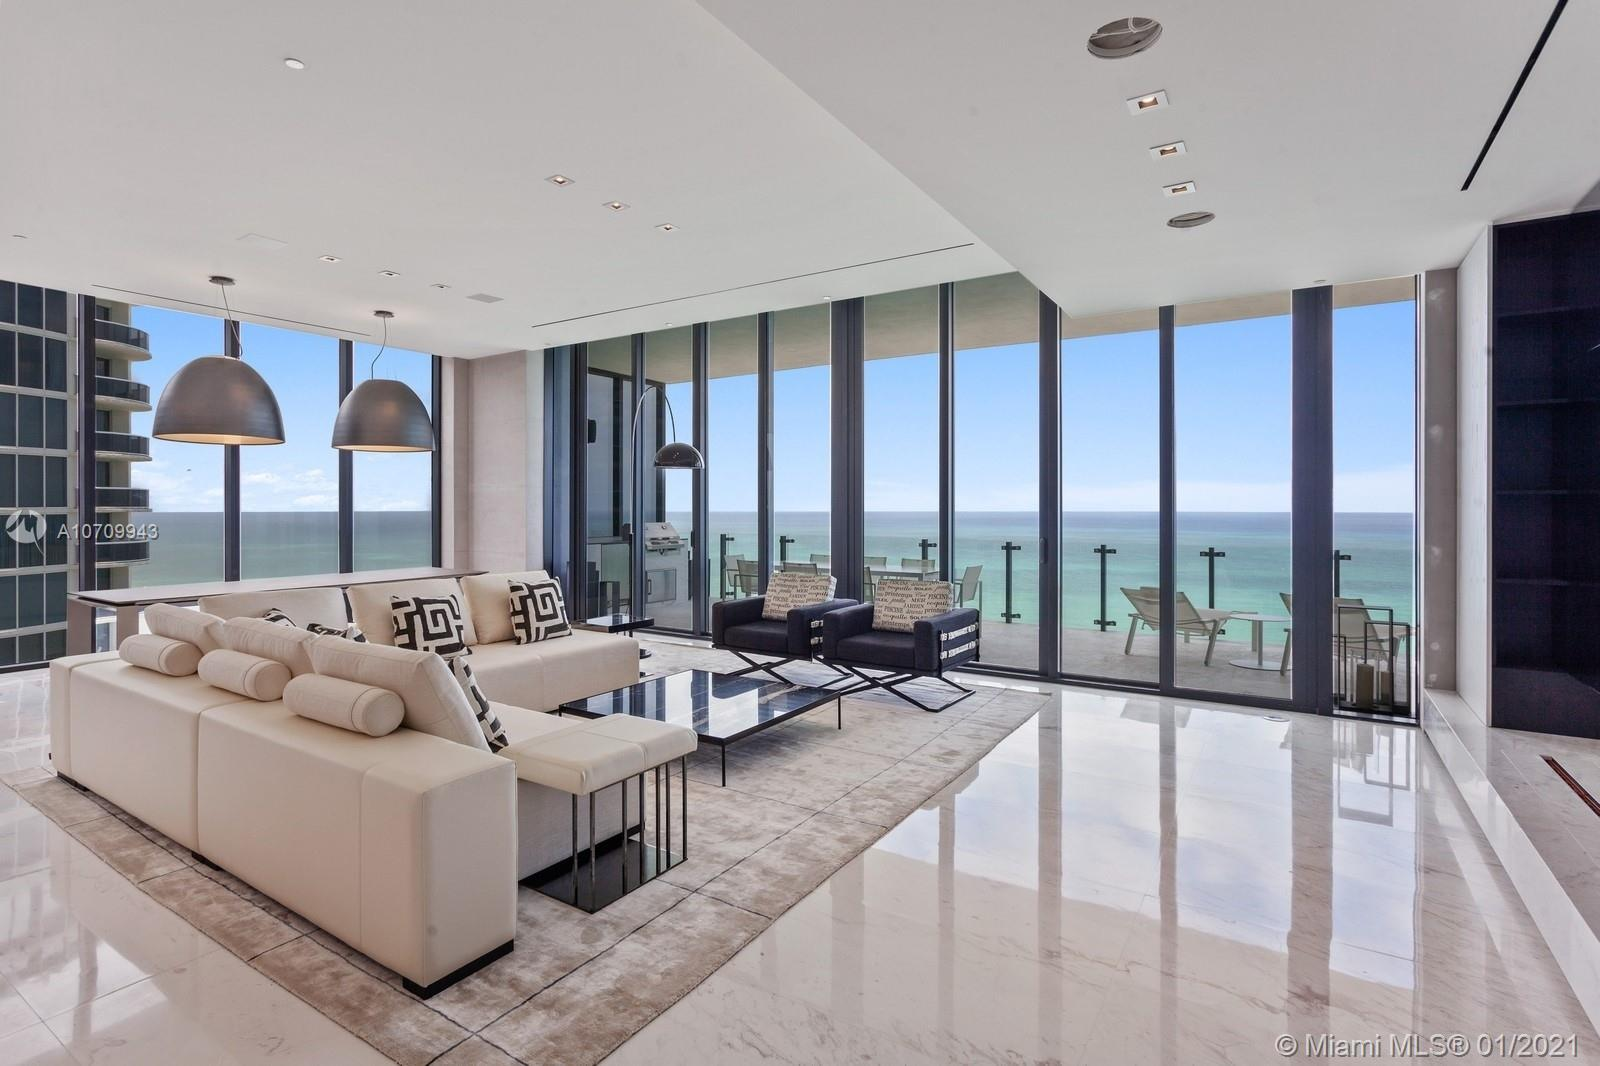 17141 Collins Avenue, Sunny Isles Beach, Florida